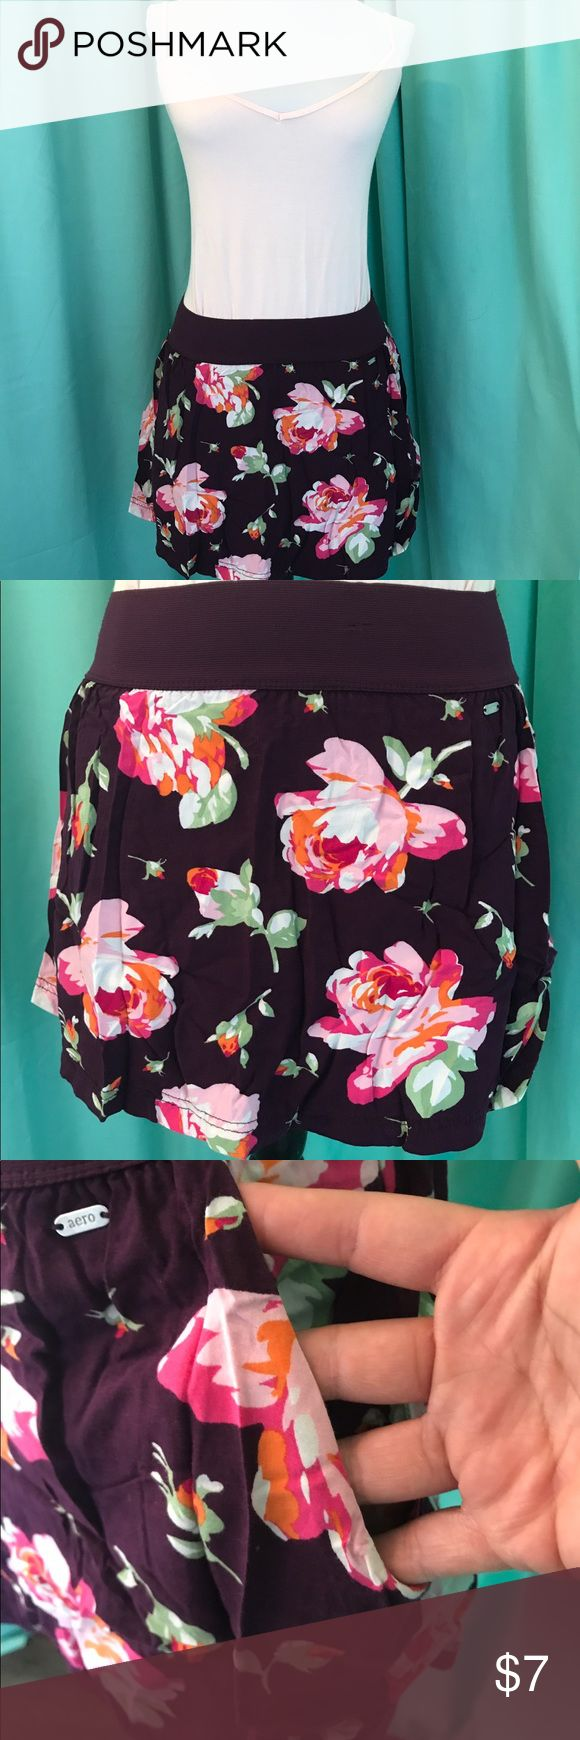 Aeropostale floral mini skirt Size SP. Brand Aeropostale. Attractive floral print skirt with pockets. Stretchy, elastic waistband. Light breathable material. (Cami Top is not included)*4th picture has fuzzies along waistline, this was done by manufacturer during stitching process* Aeropostale Skirts Mini